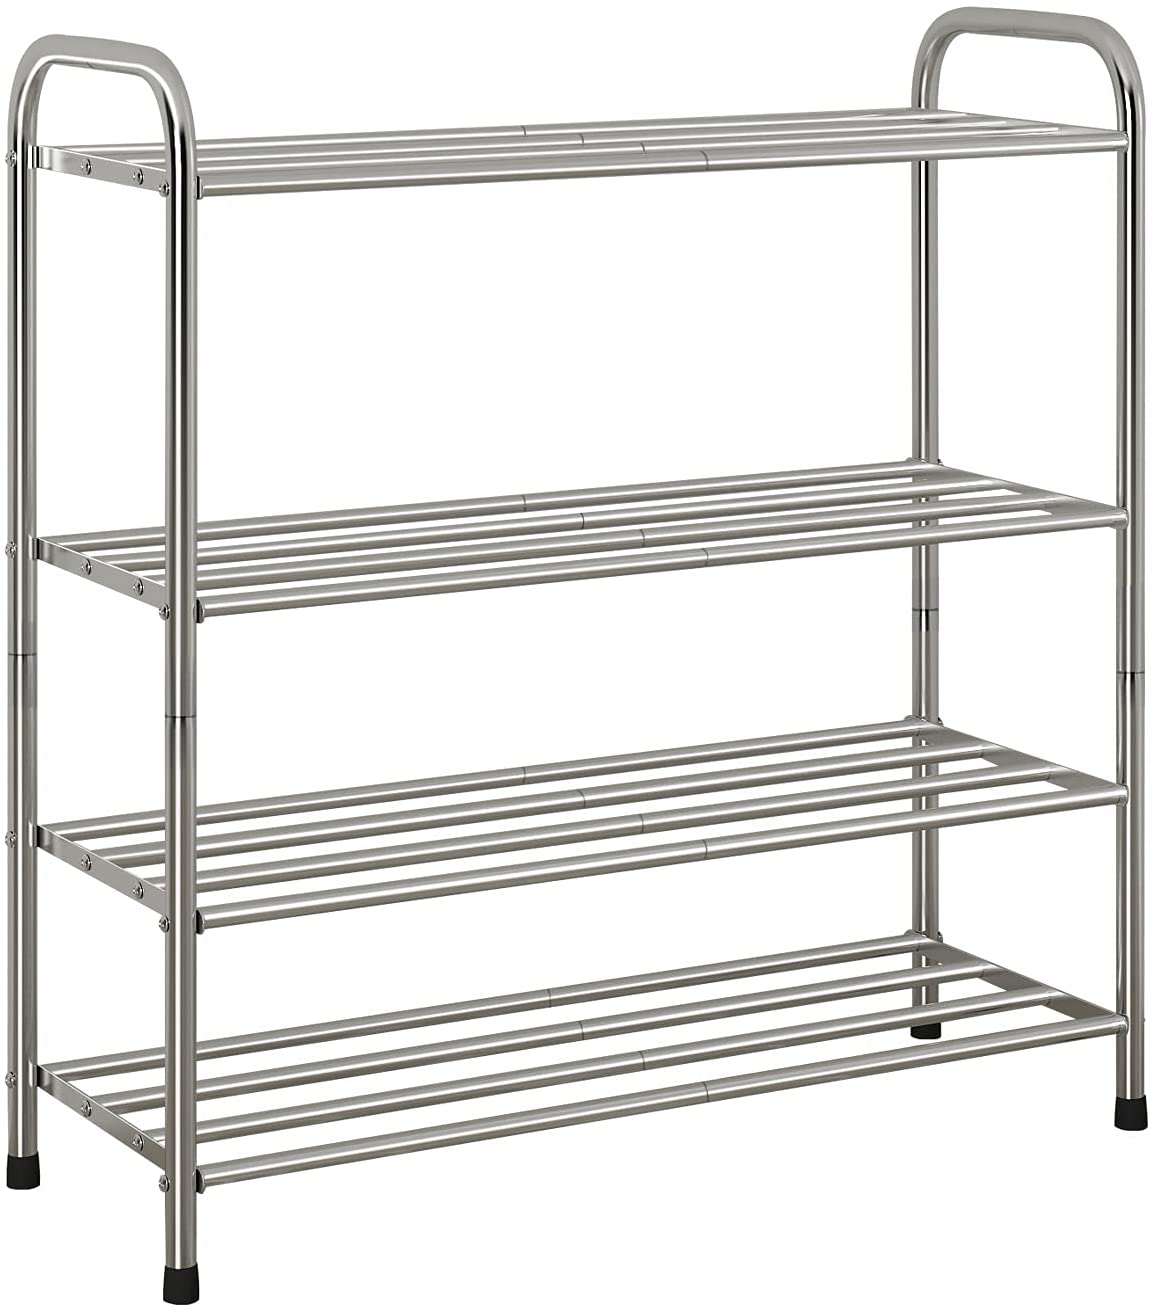 Ranking TOP10 AISPUTIN 4-Tier Stackable Max 48% OFF Shoe Rack f Stainle Steel Shelves